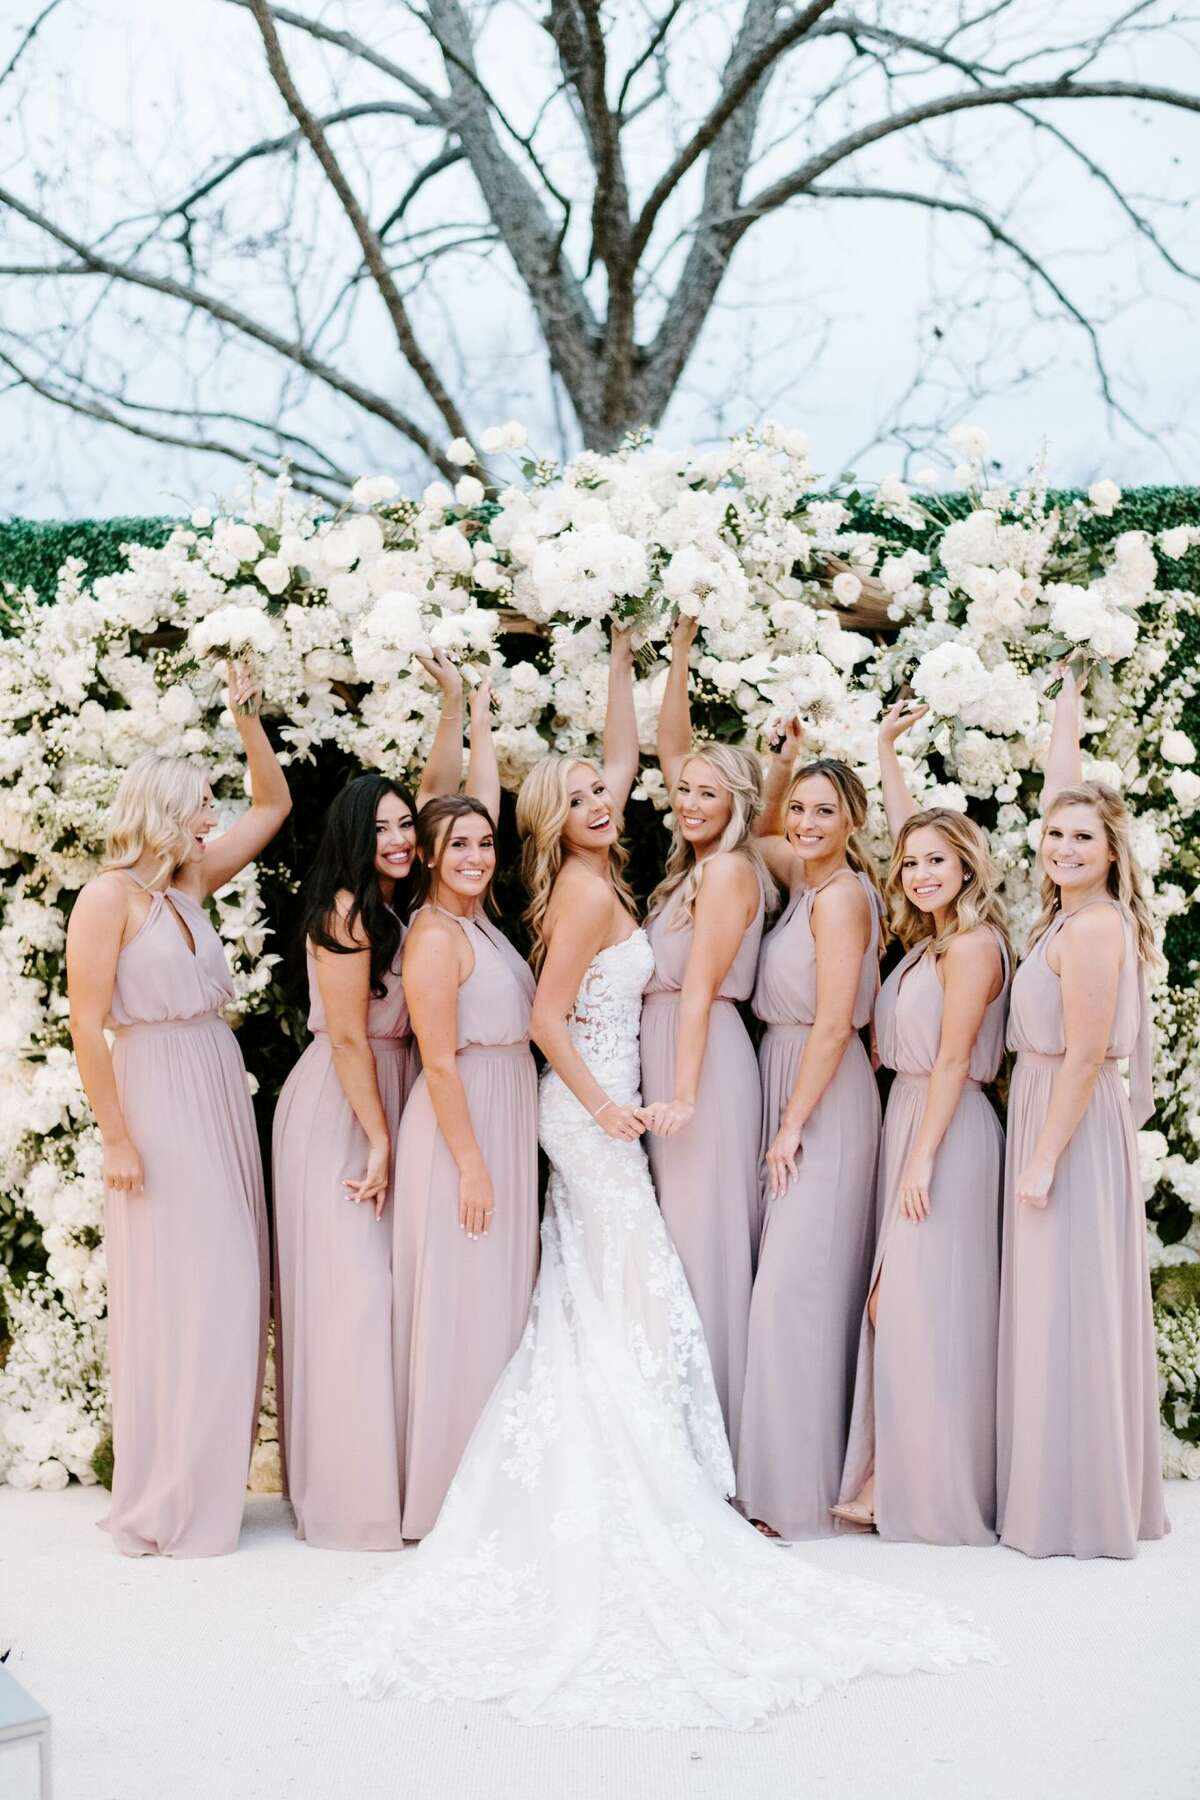 Reagan Bregman with her bridesmaids before her wedding with Alex on Dec. 5, 2020.